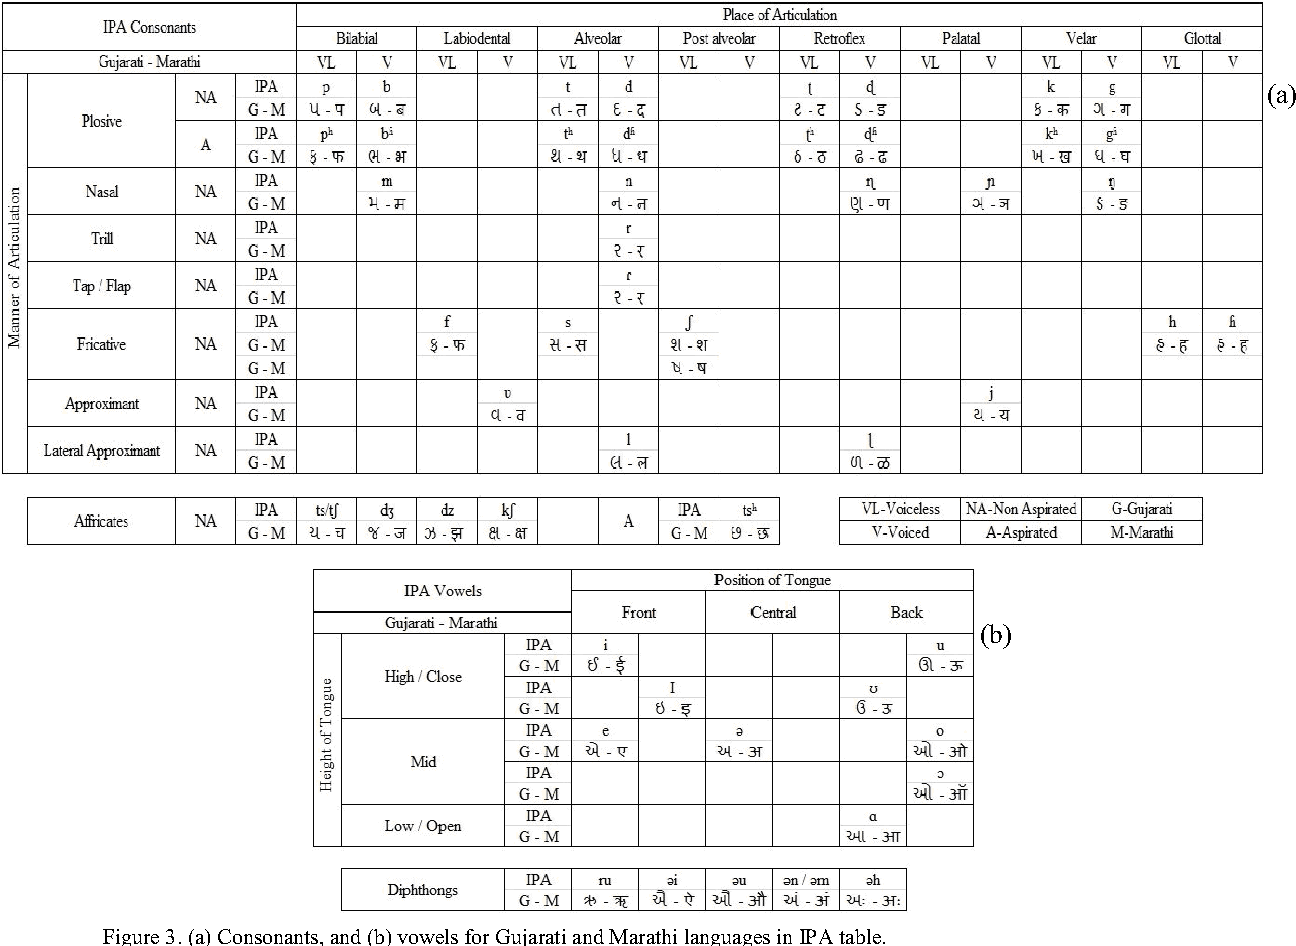 Table 2 from Phonetic Transcription of Fricatives and